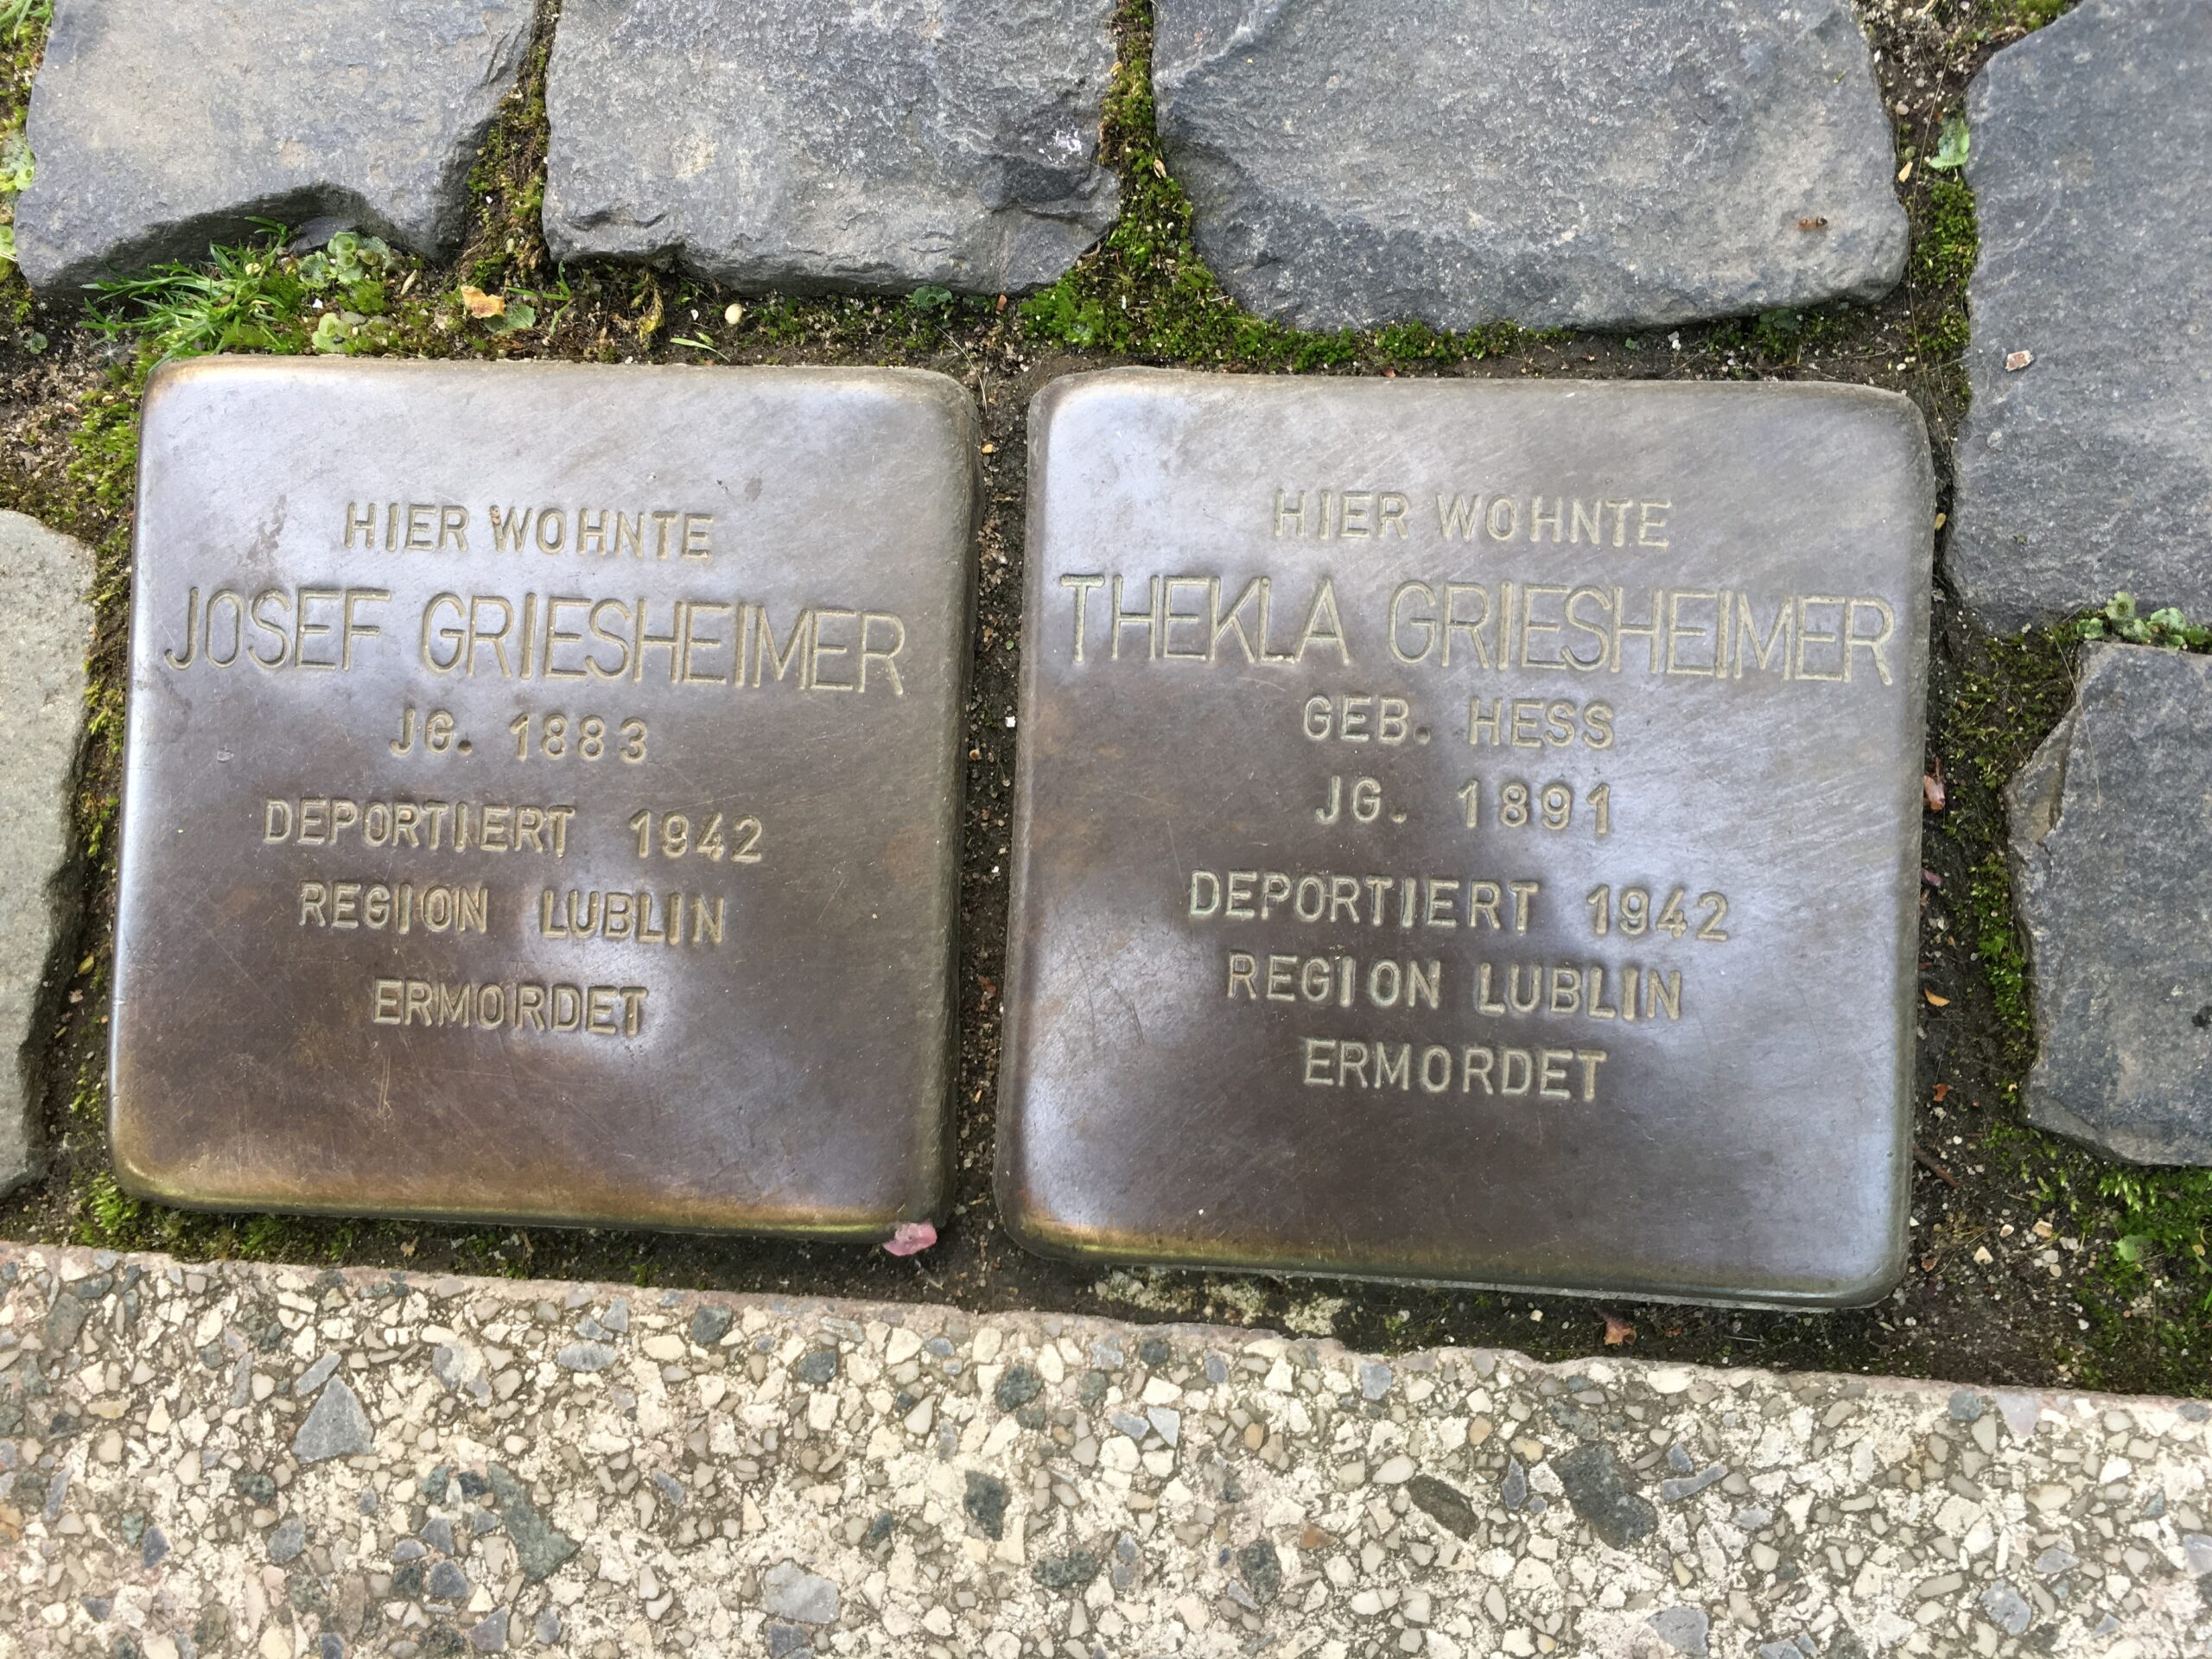 Two stones at the entrance of the house, family members that died in the Holocaust